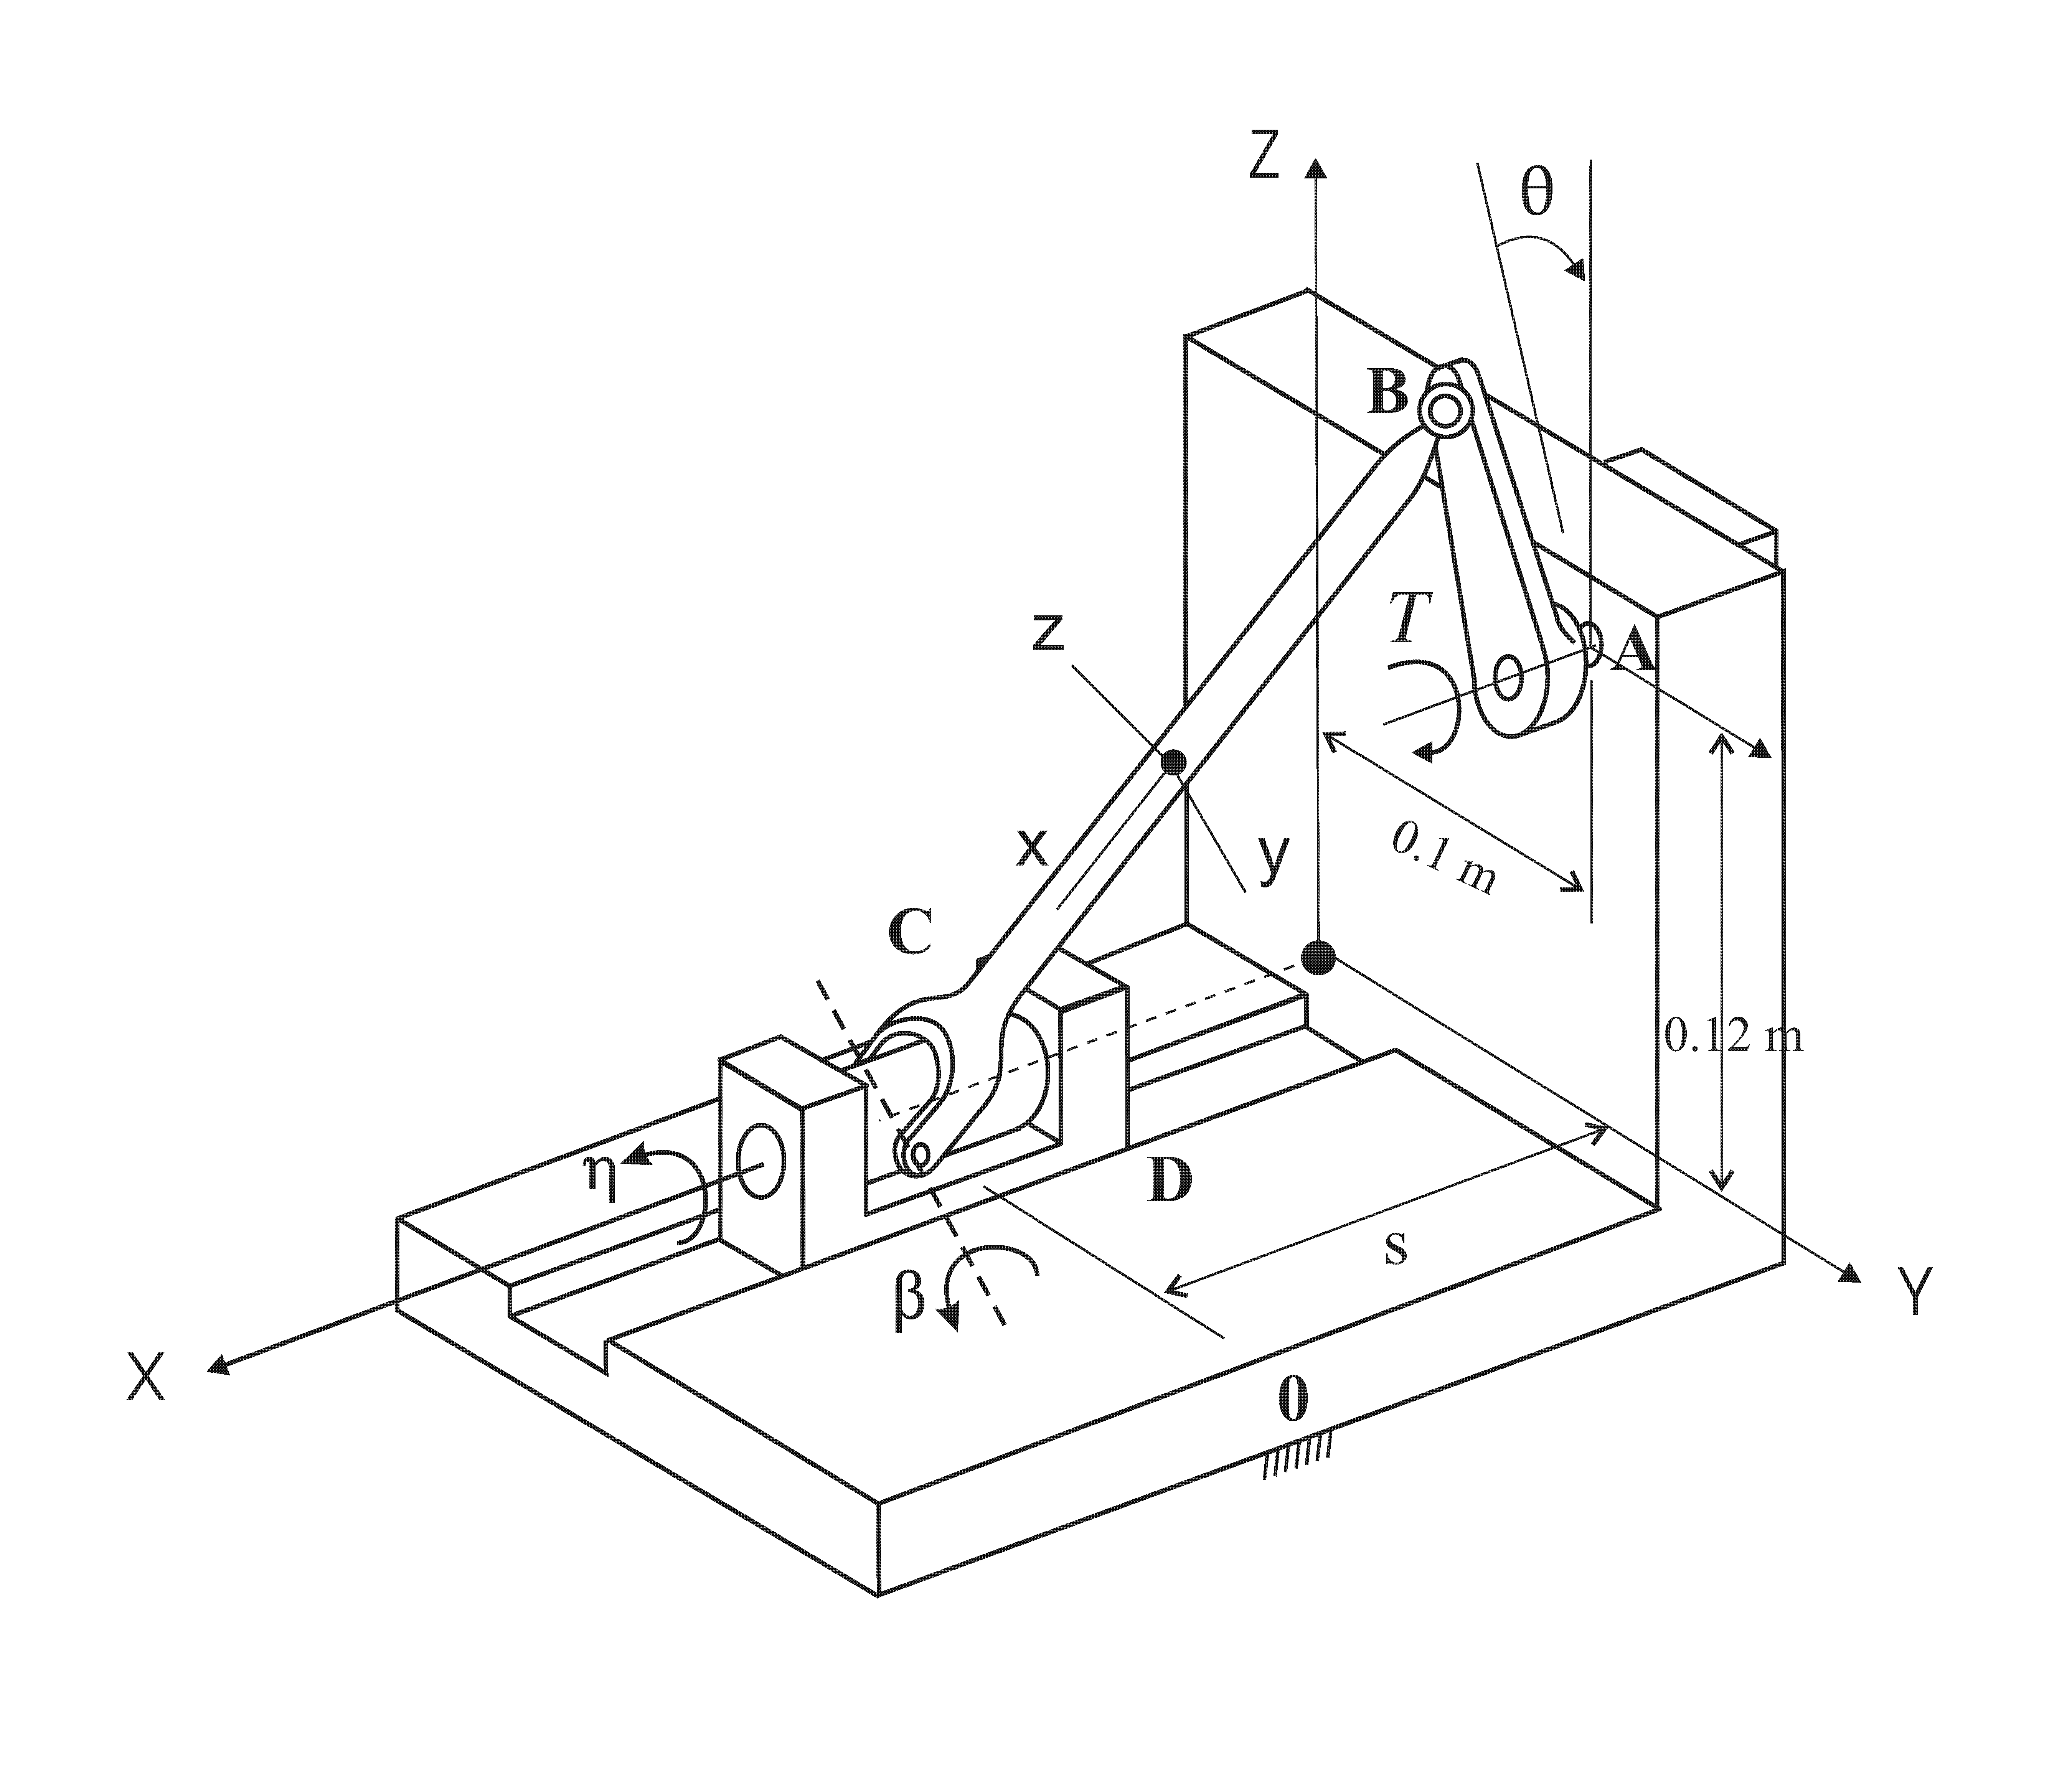 Spatial rigid slider-crank mechanism image